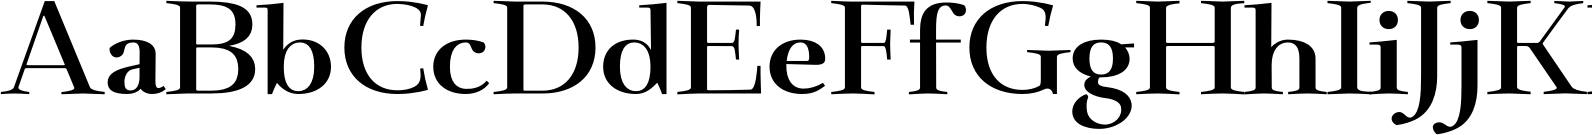 Deleplace Bold Font